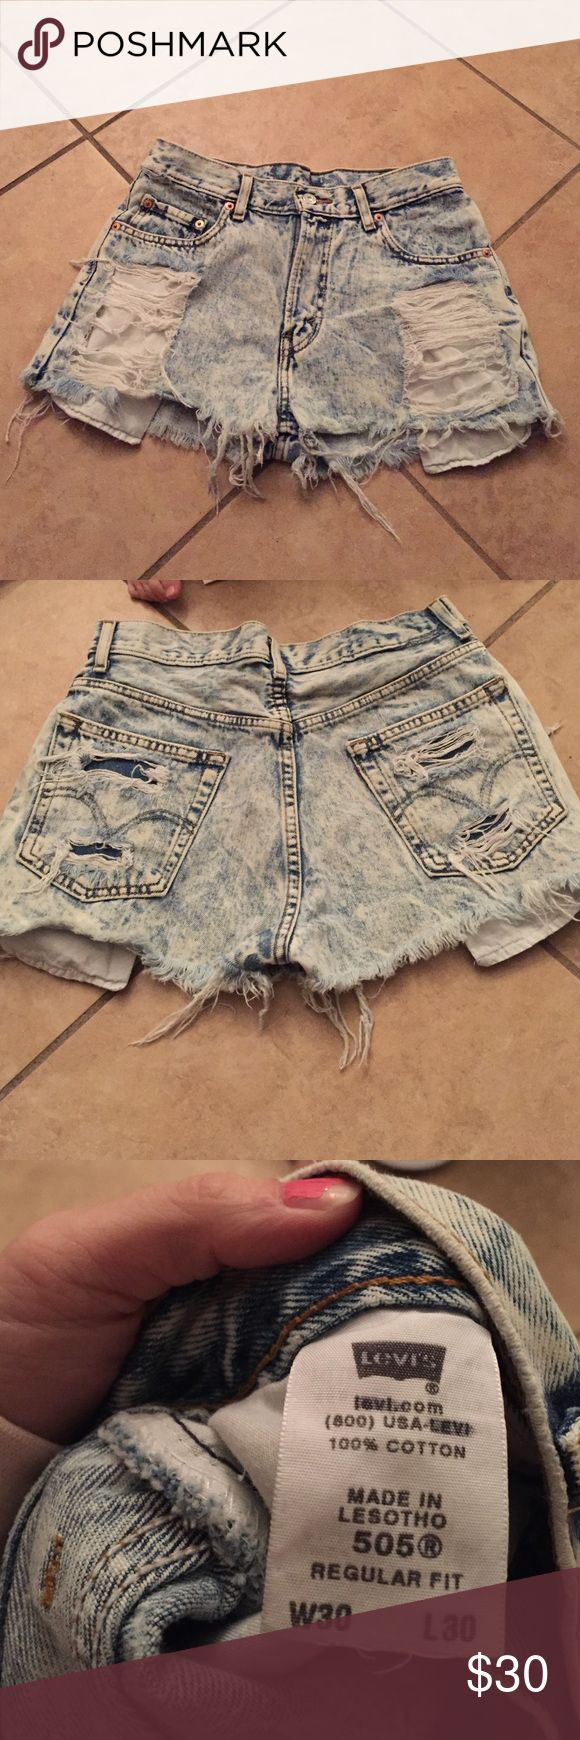 High waisted Levi shorts Cute high waisted vintage Levi shorts only worn a couple times. I loved these shorts!! American Apparel Shorts Jean Shorts